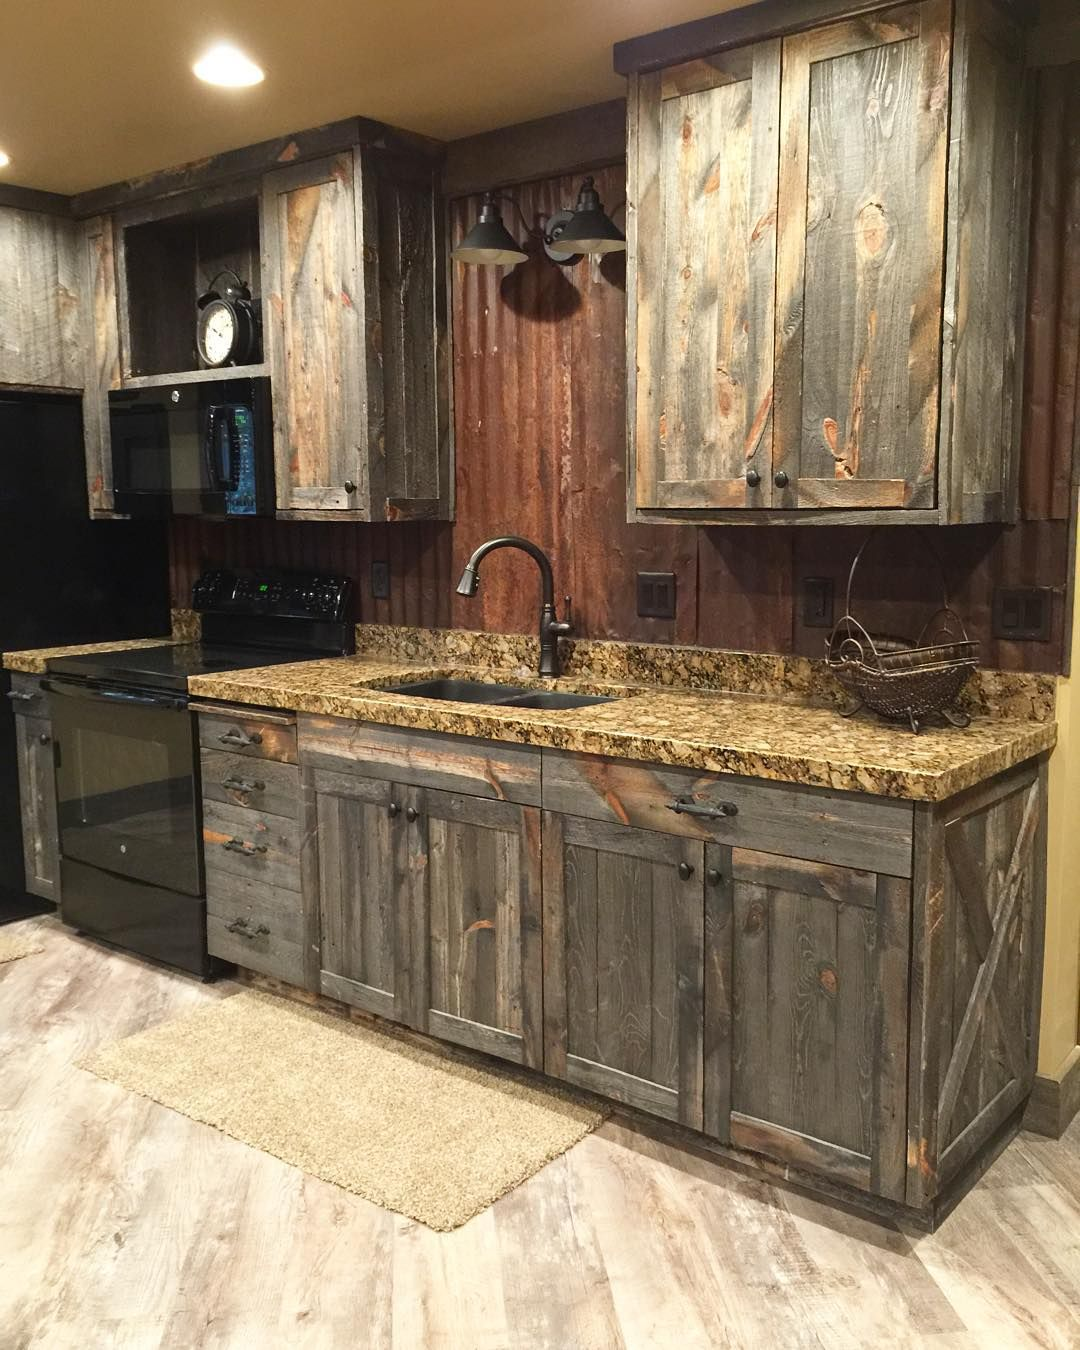 your kitchen drawer me reclaimed look that arnwood door doors hotel near furniture for design barn rustic barns splendid cabinets wood style phenomenal cabinet